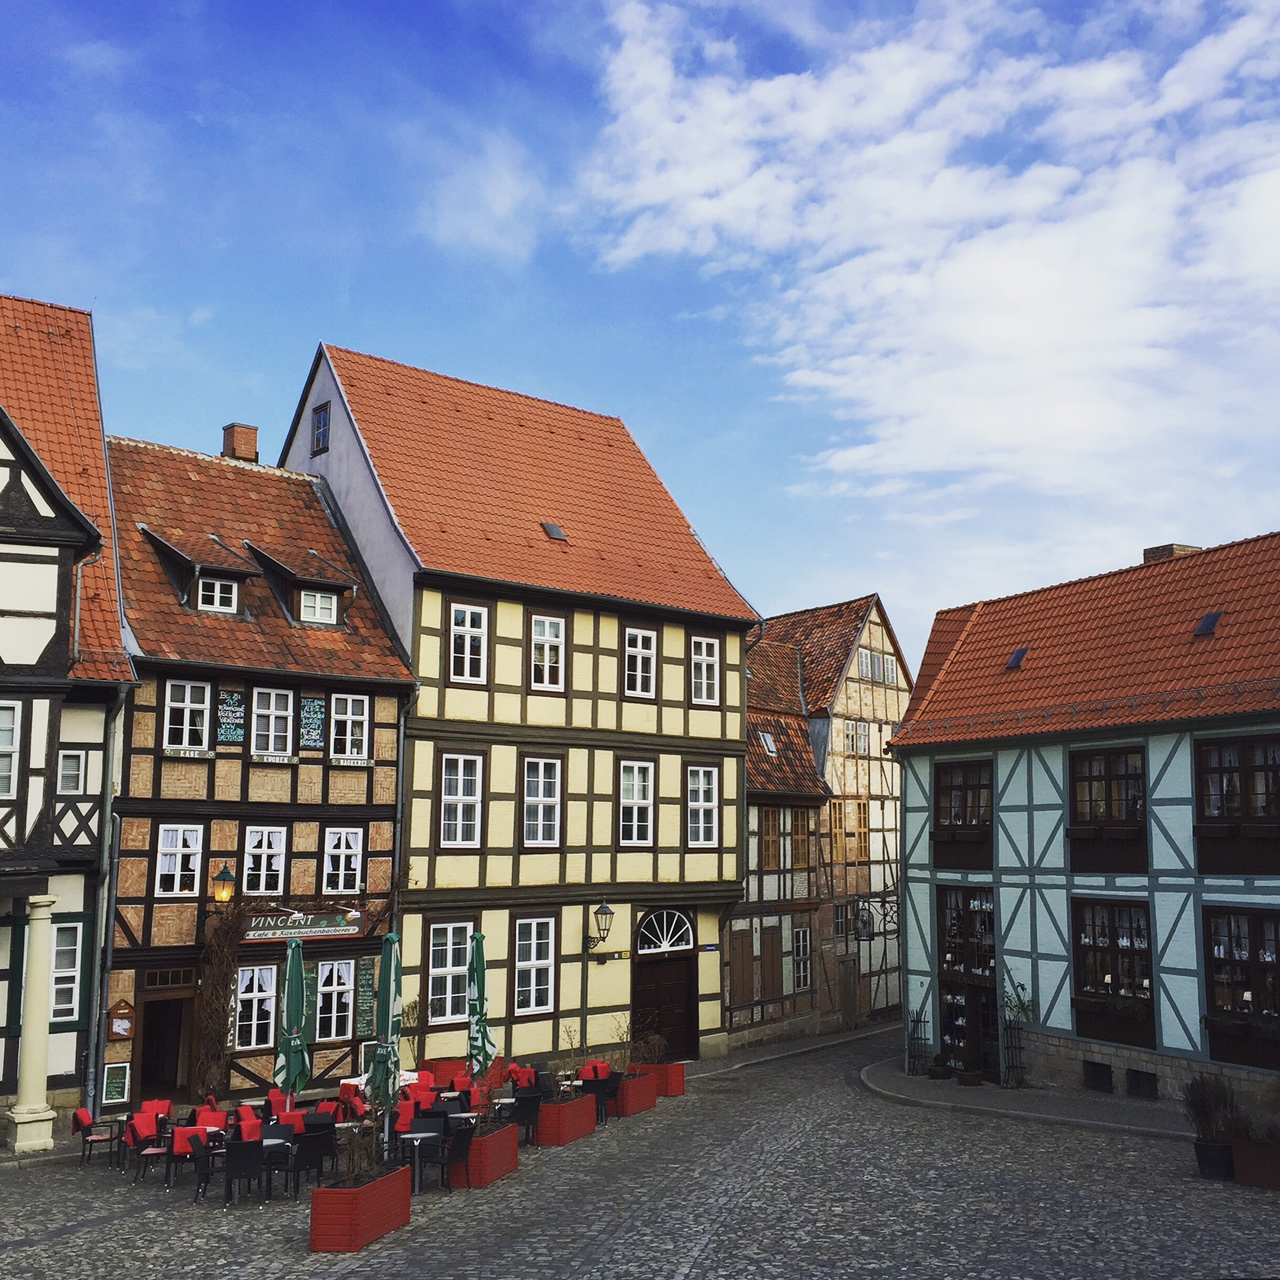 One of the many beautiful squares in Quedlinburg